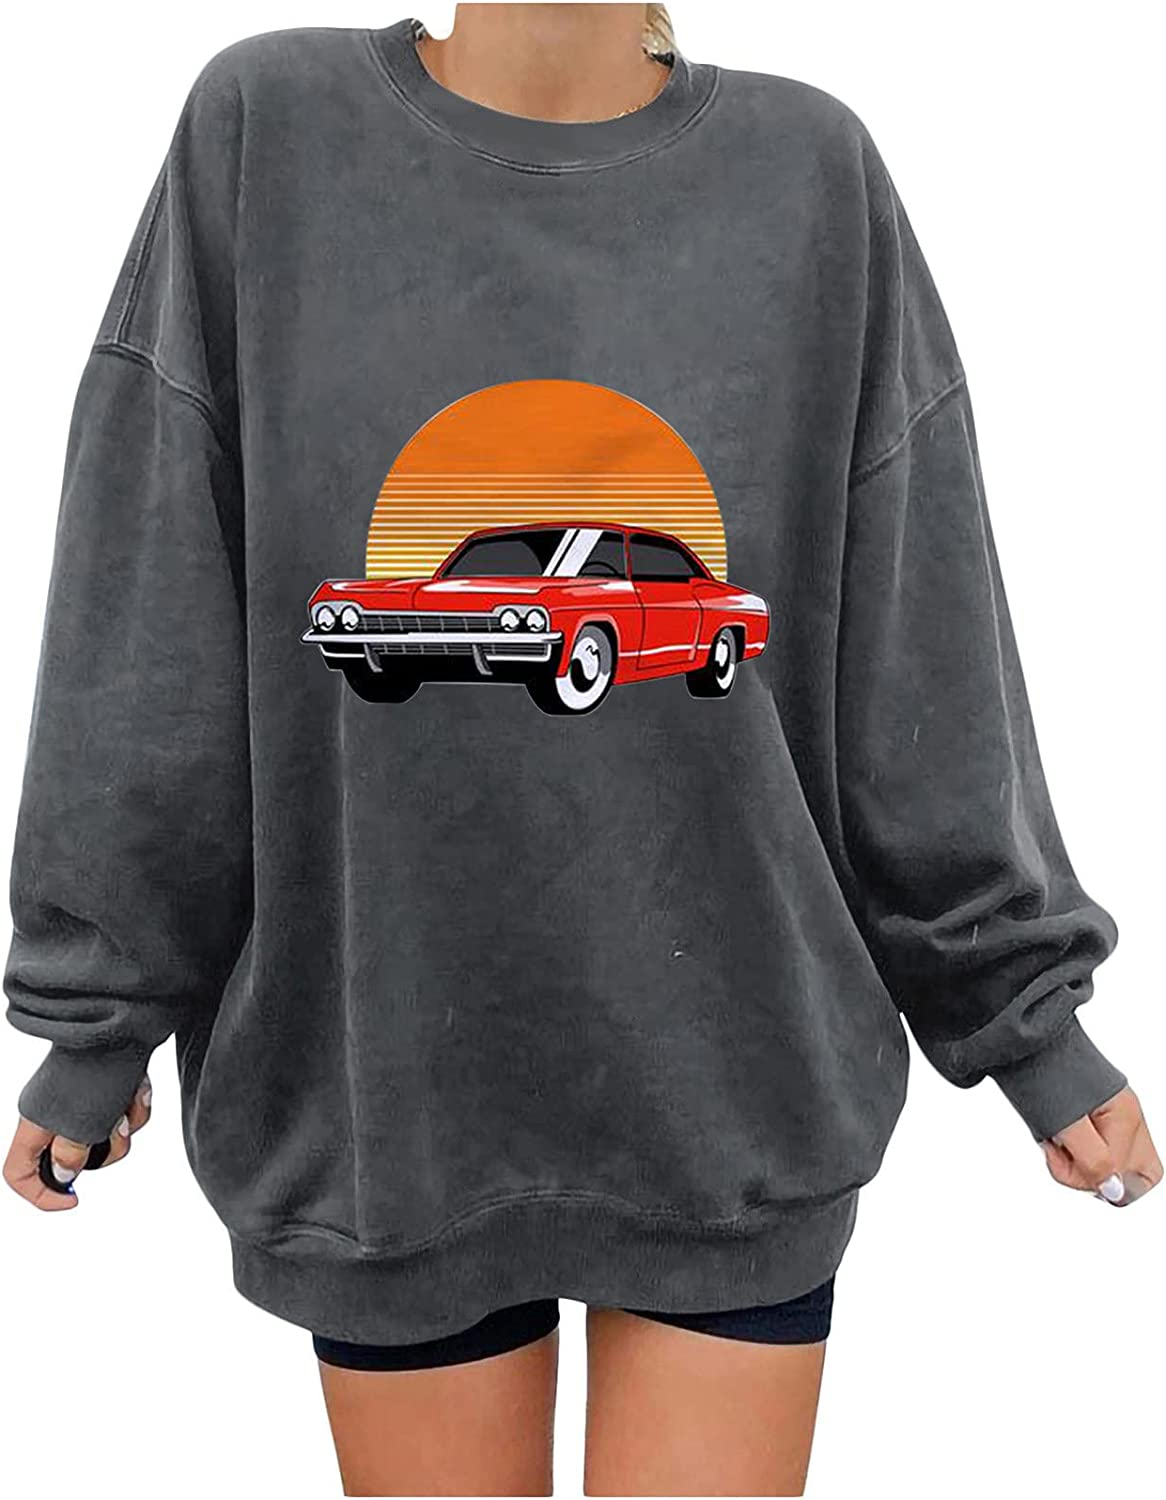 Sweatshirts for Women Oversized Car Print Crewneck Pullover Casual Comfty Long Sleeves Tee Shirts Casual Tops